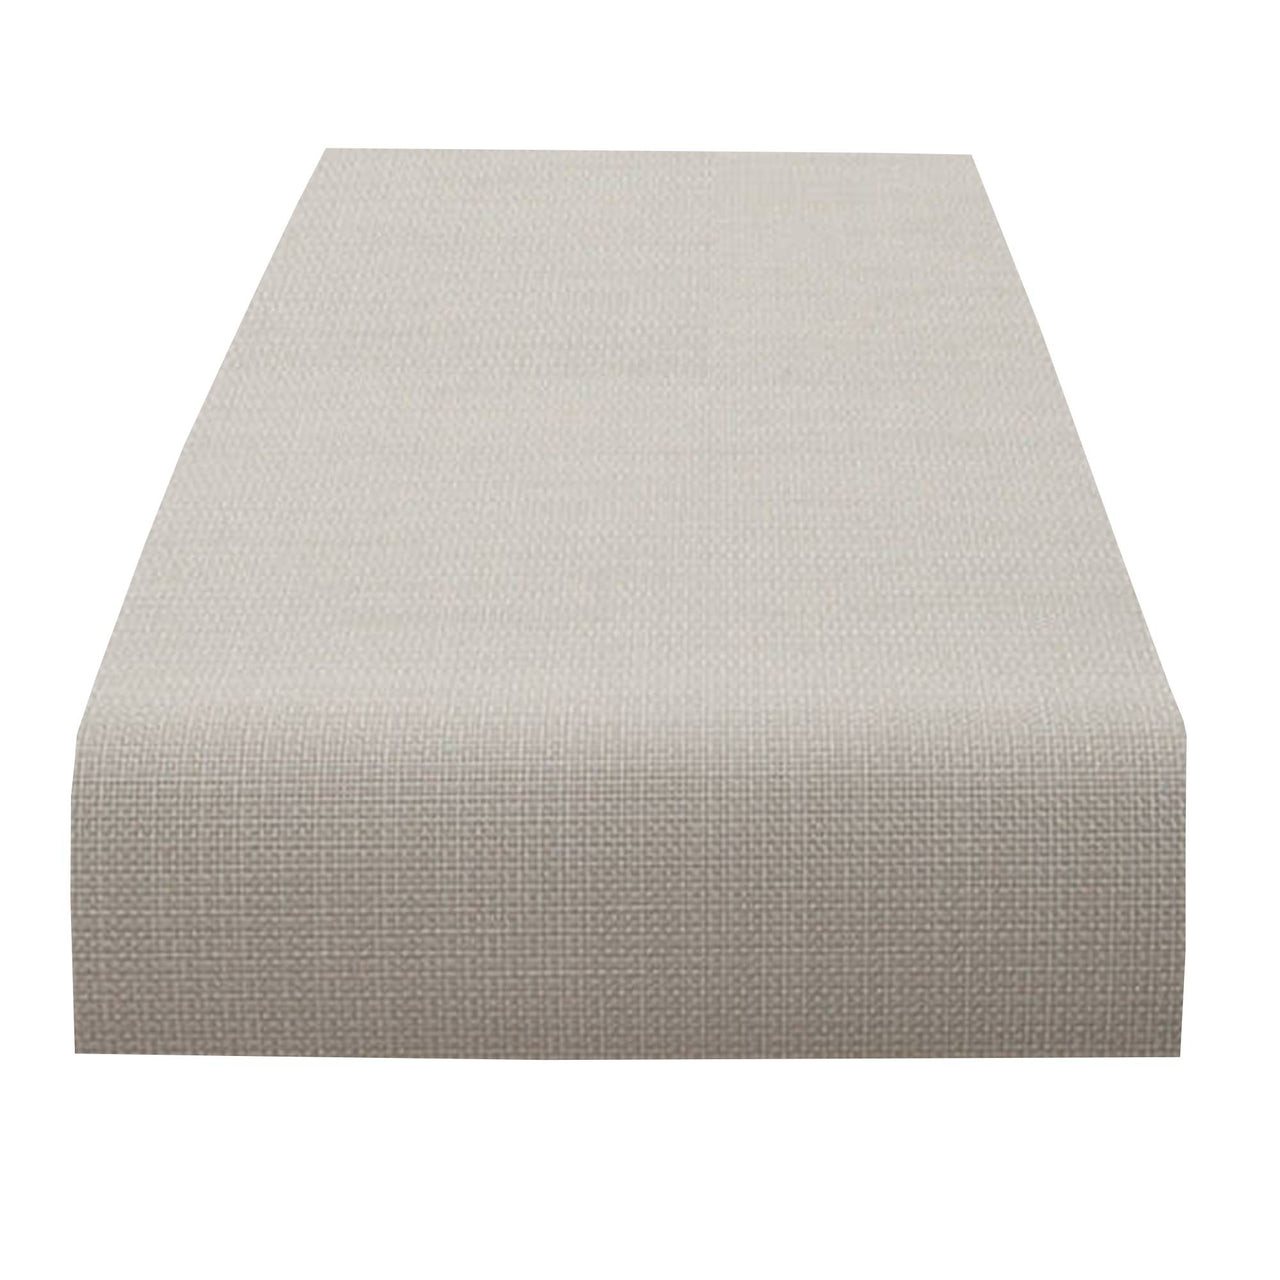 Mini Basketweave Table Runner: Sandstone